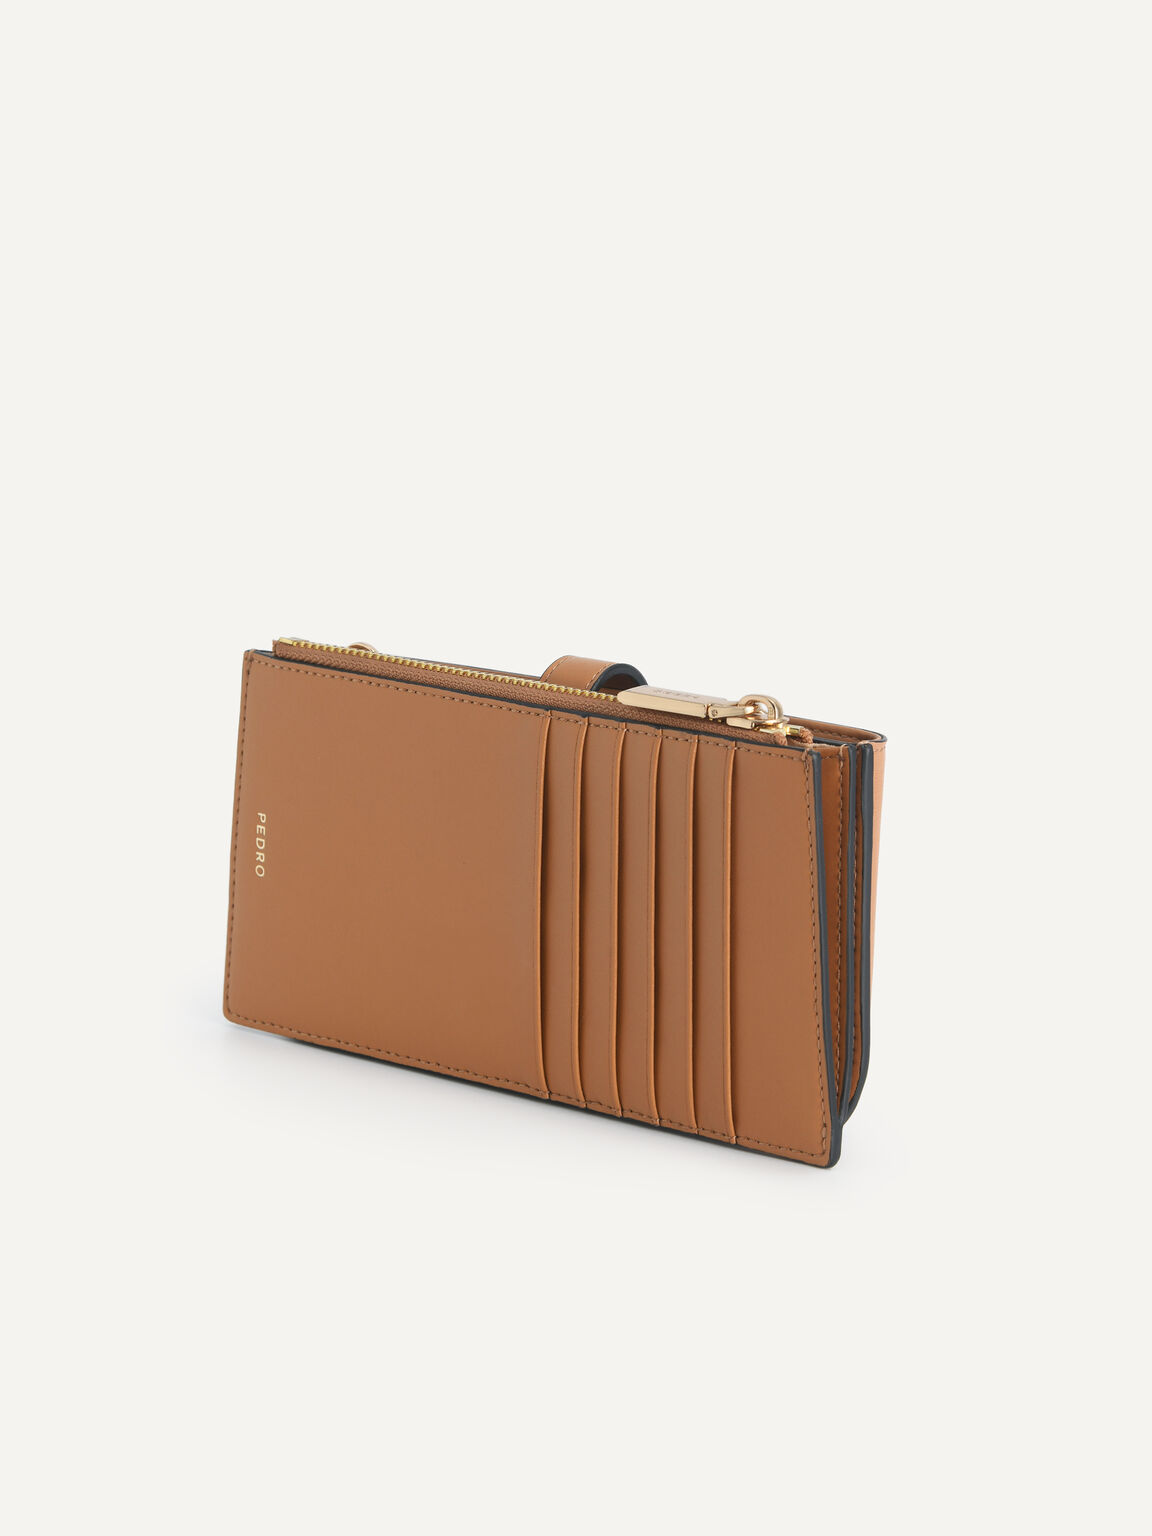 Textured Leather Phone Pouch, Camel, hi-res